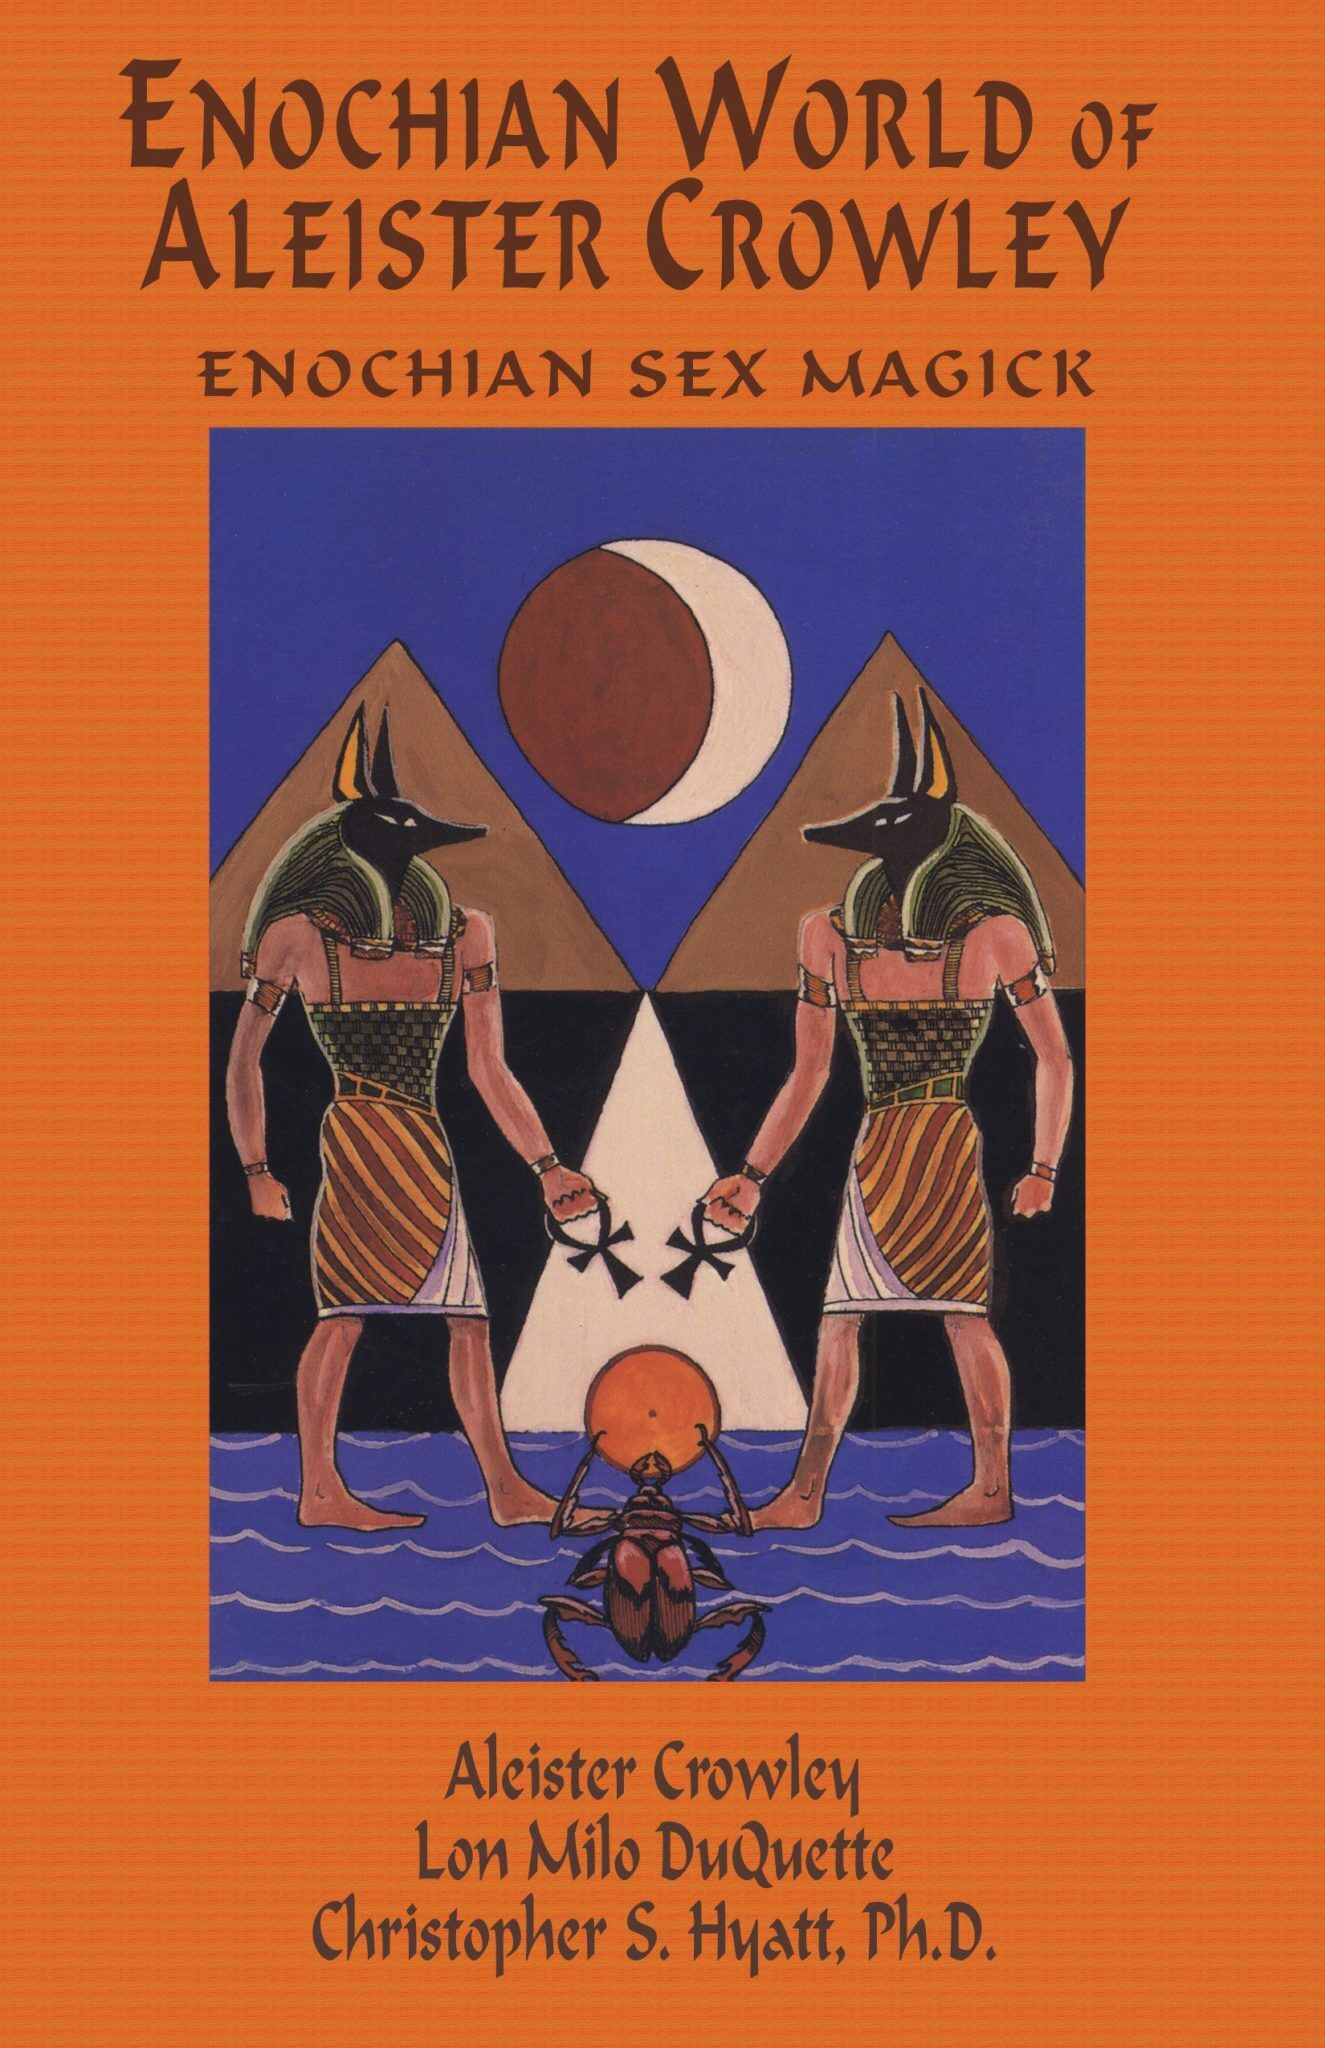 Enochian Sex Magick